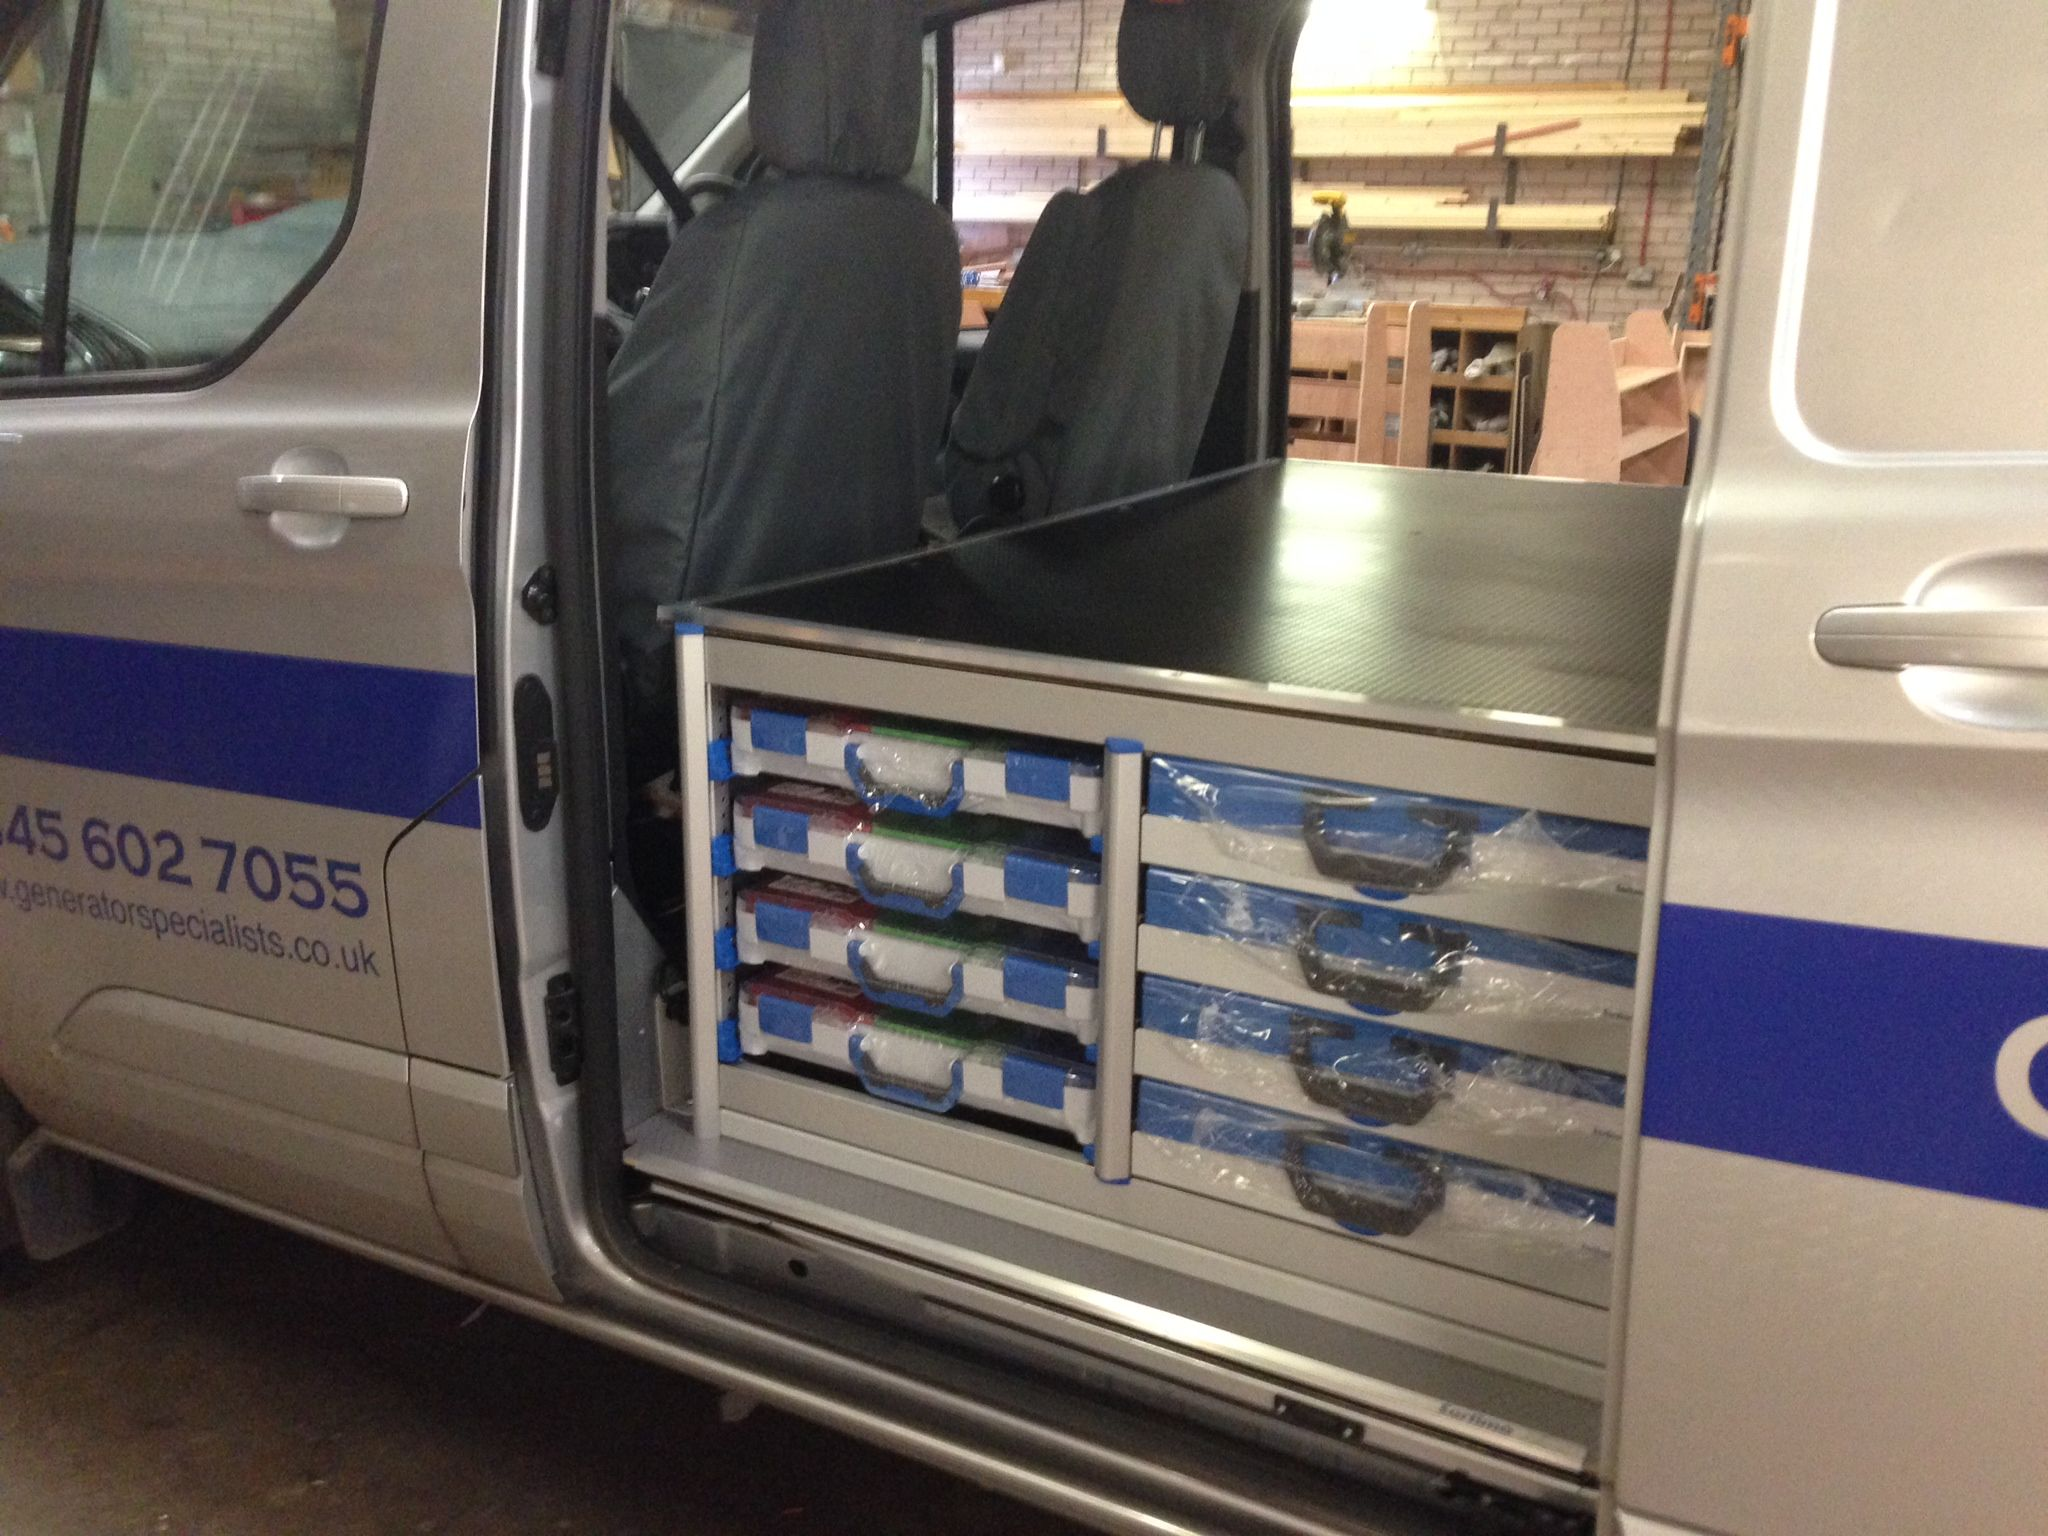 Ford transit custom l2 sortimo t boxx and engineer case system accessible from nearside